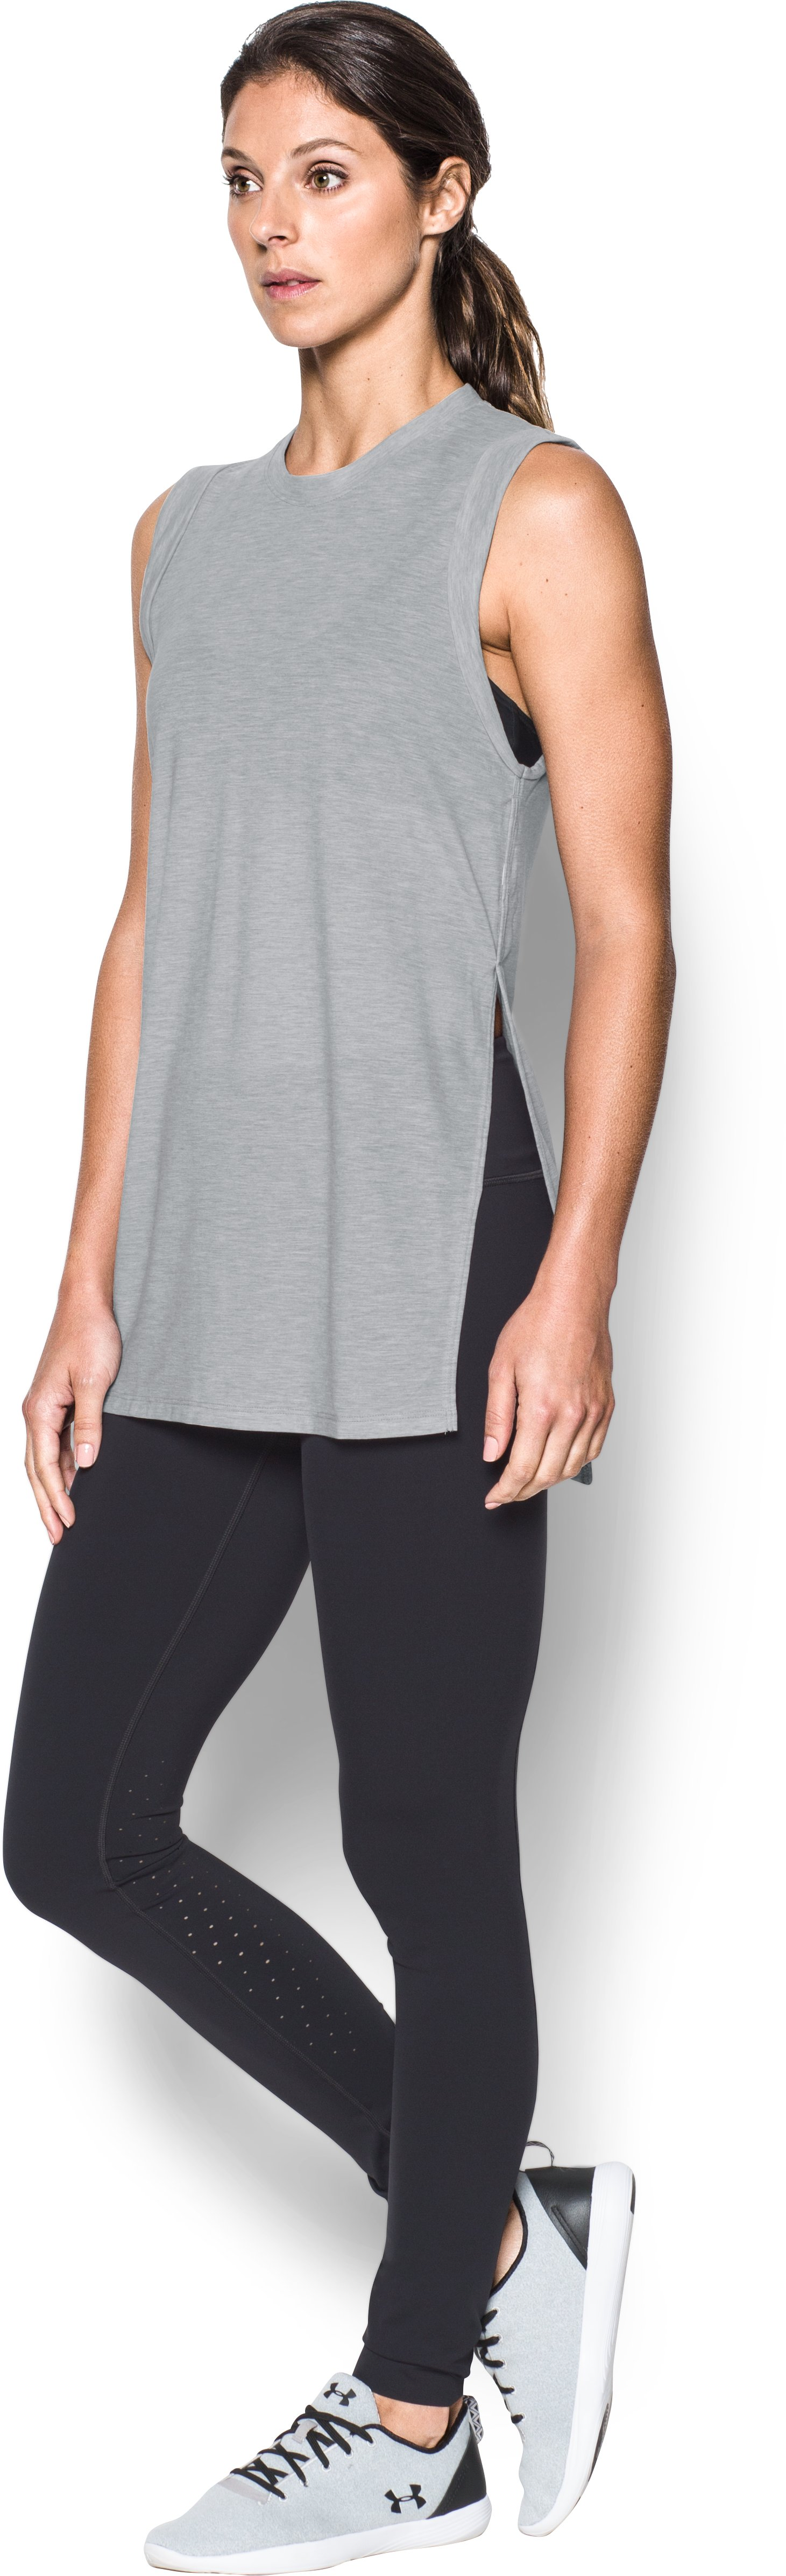 Women's UA Breathe Tunic Tank, True Gray Heather, undefined